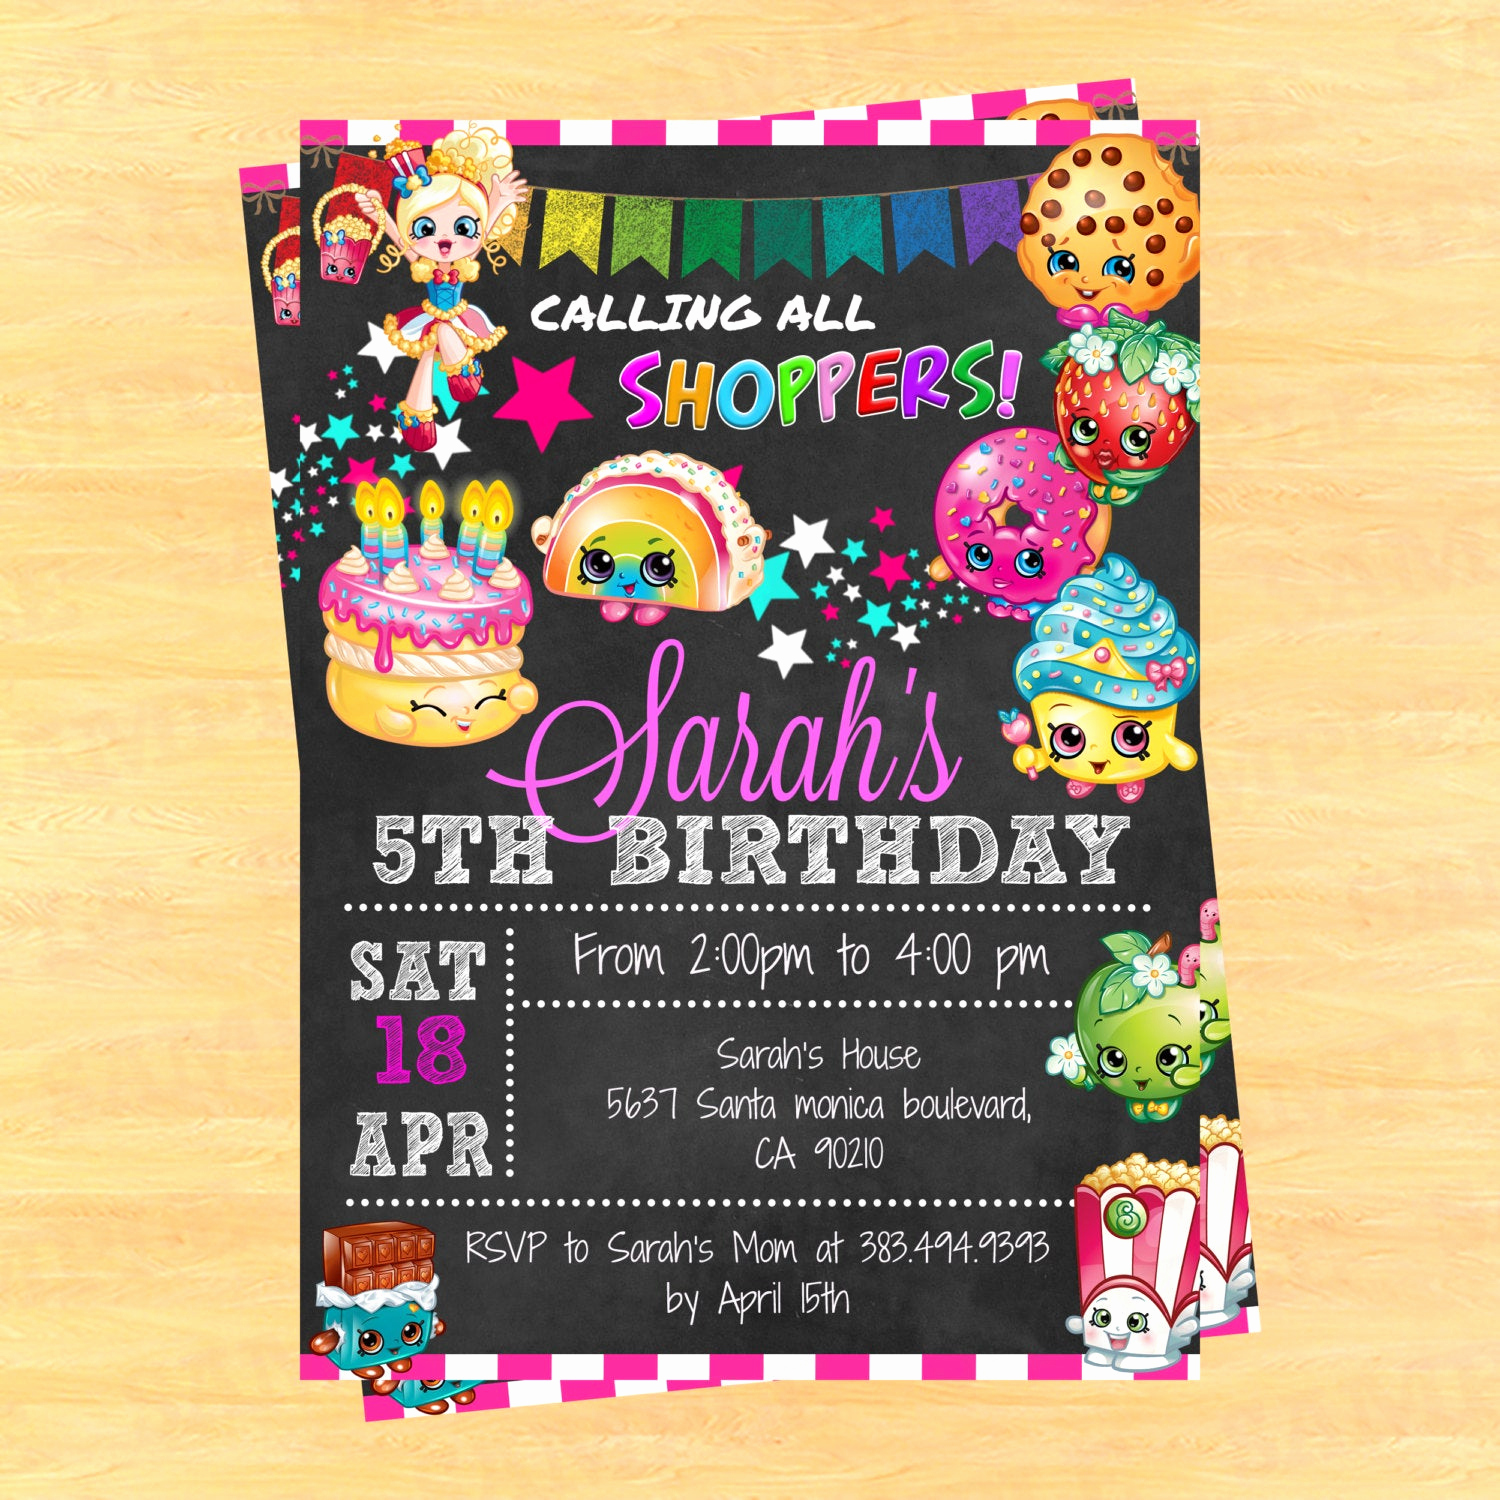 Shopkins Birthday Invitation Template Free New Printable Shopkins Birthday Party Invitation Shopkins